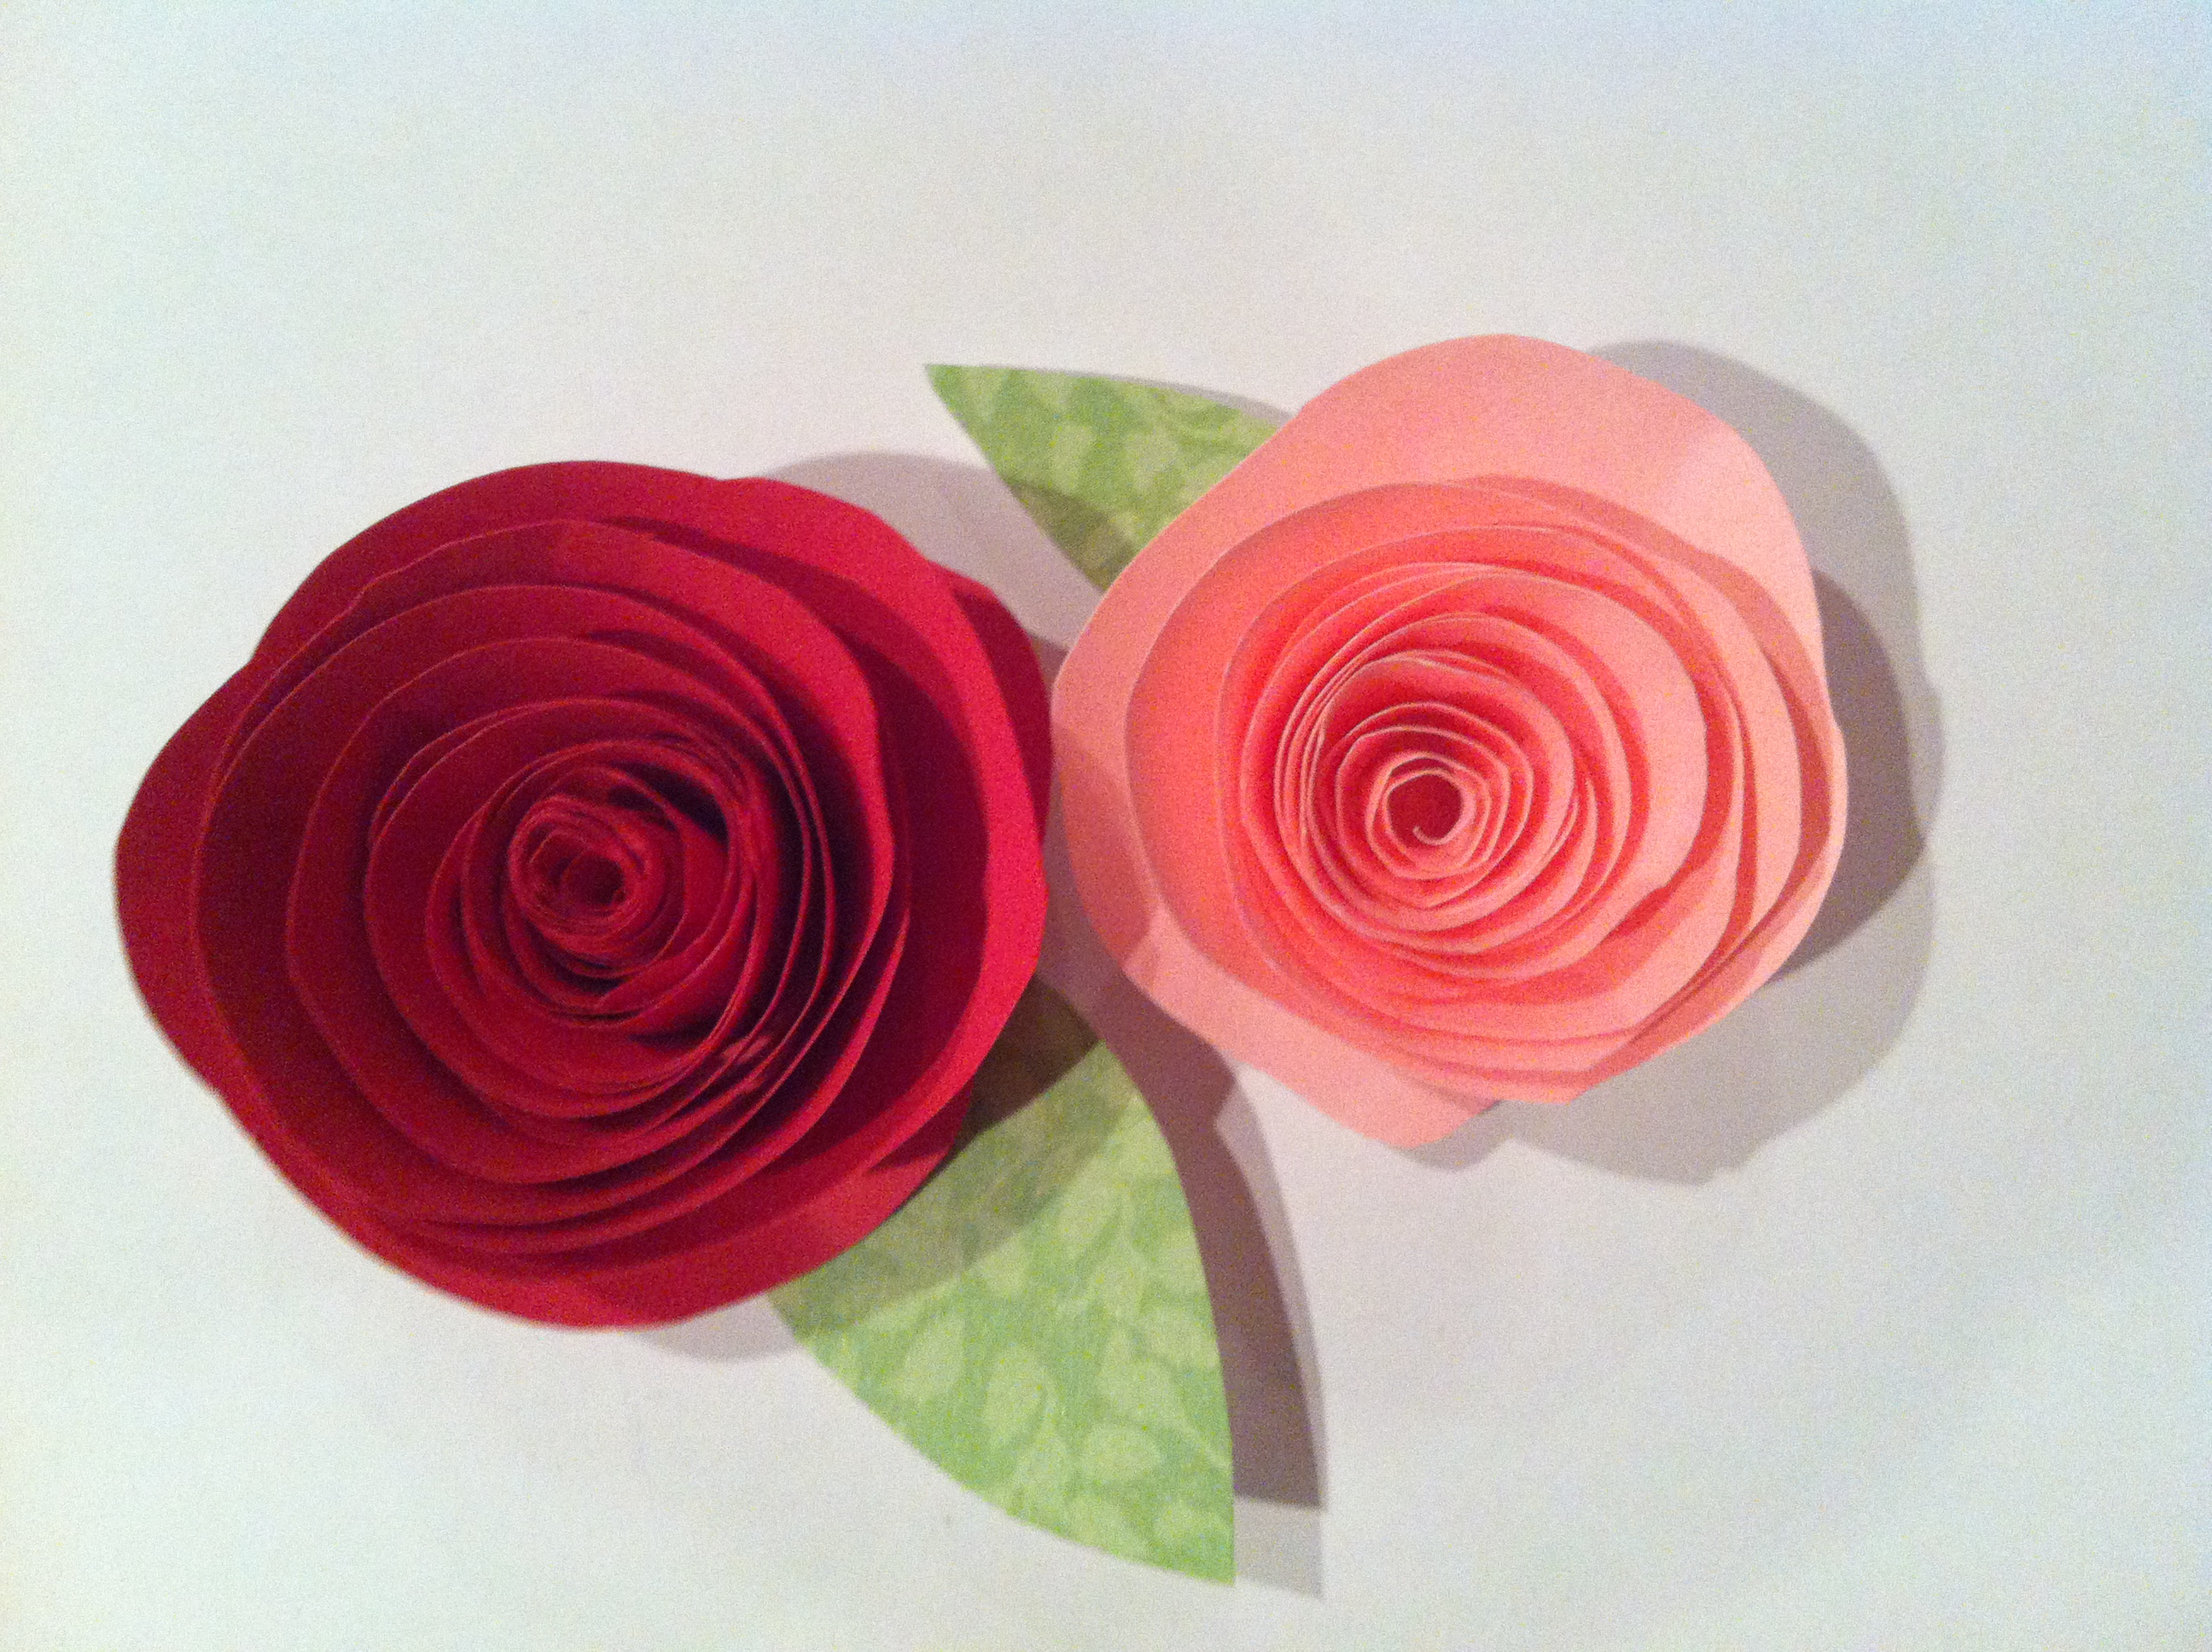 Simple and Cute Construction Paper Crafts for Kids Pretty Paper Roses Desks Dreams